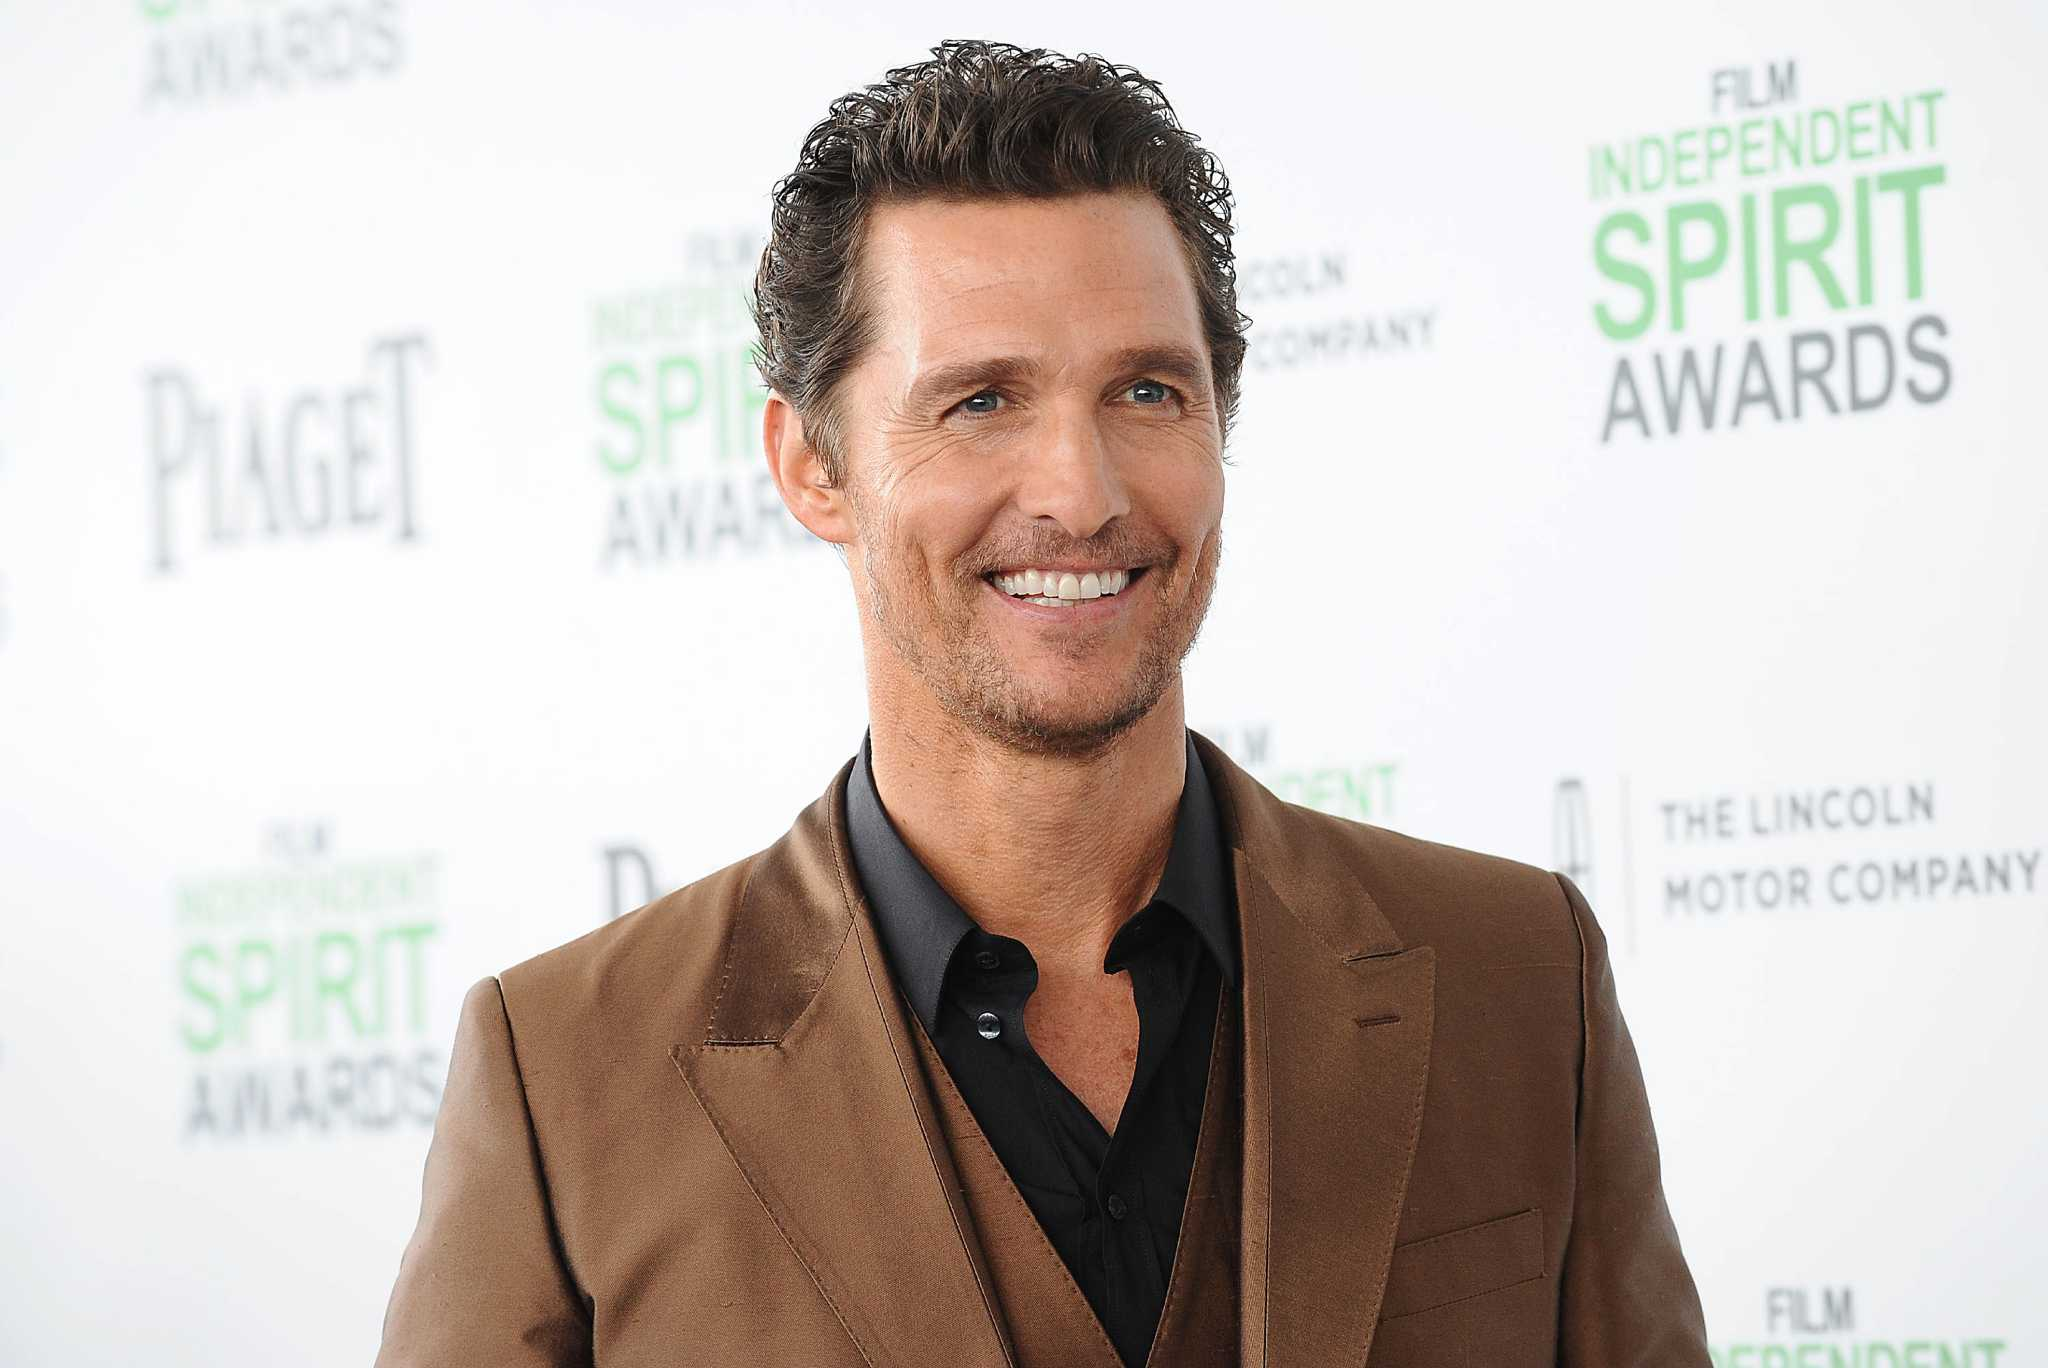 UH won't release Matthew McConaughey contract details